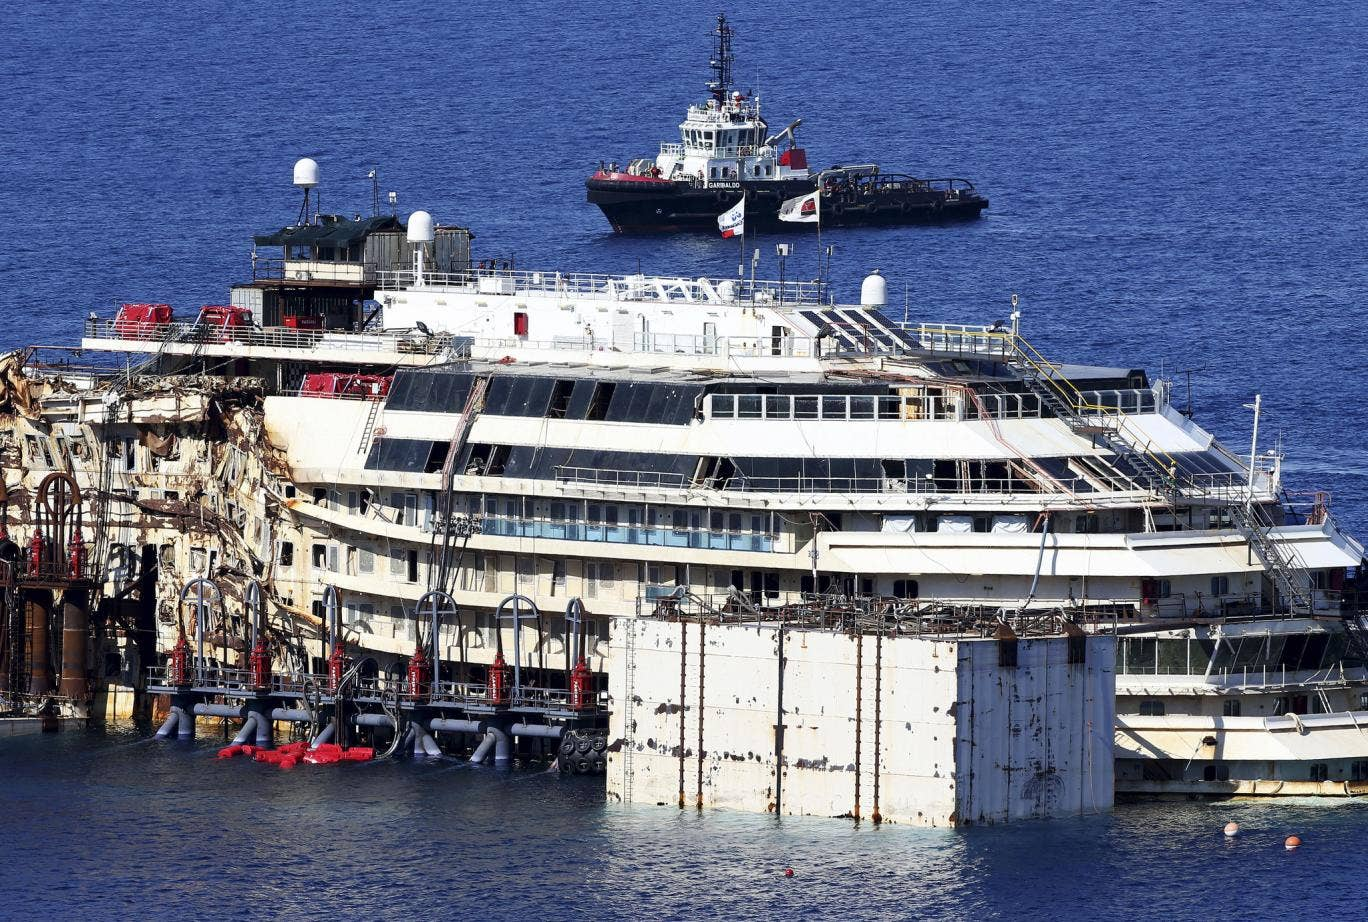 The remaining missing victim of the Costa Concordia crash is to be searched for